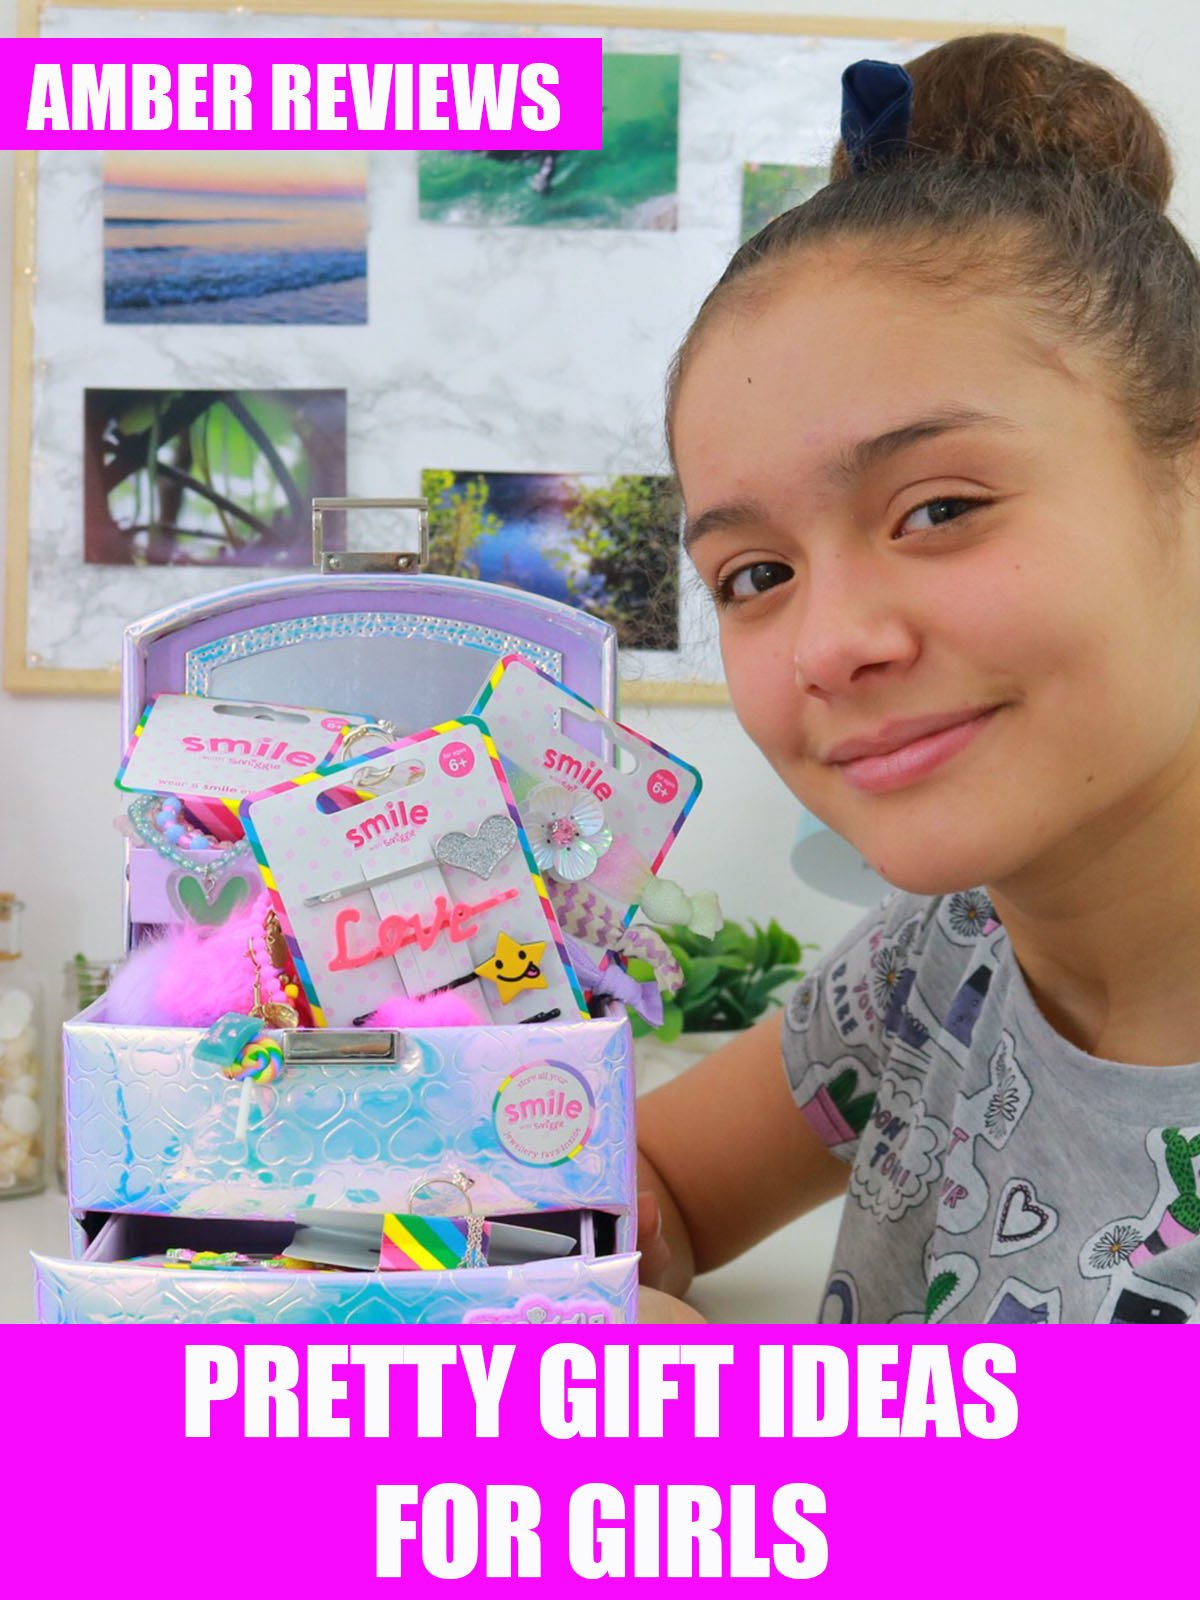 Amber Reviews Pretty Gift Ideas for Girls